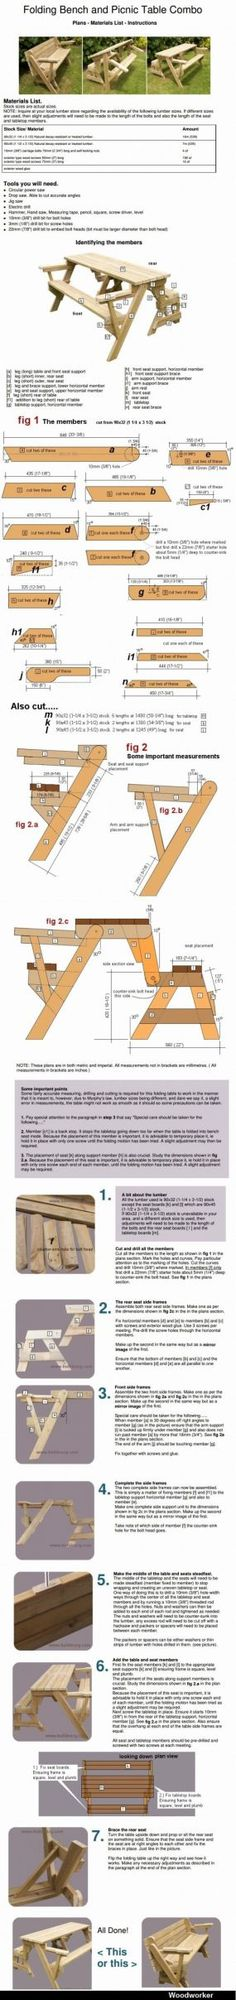 Folding Bench and Picnic Table Combo. Complete plans. Wooden chair plan - CLICK TO ENLARGE